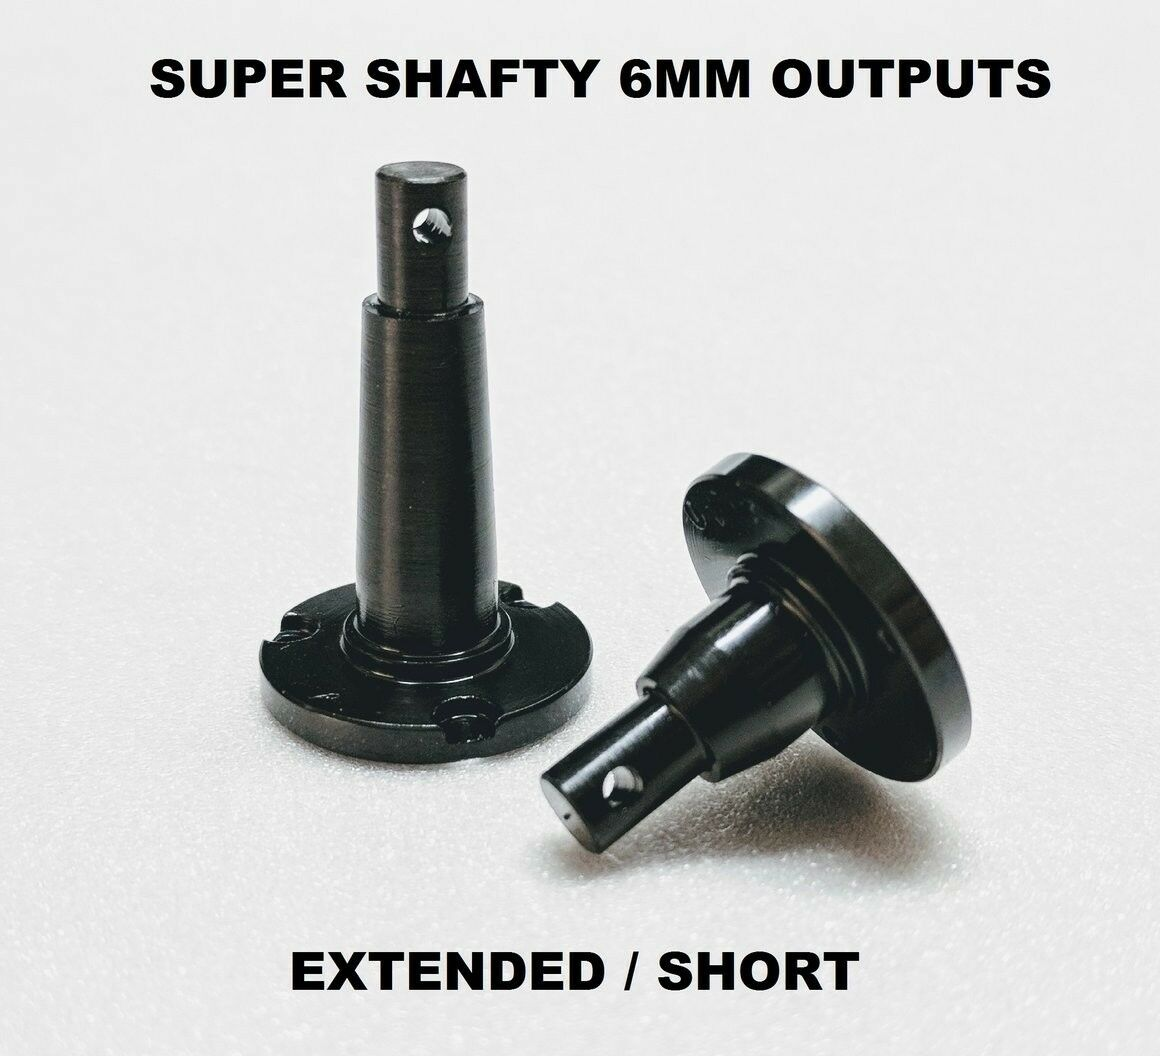 SuperShafty BOMBPROOF 6mm Scx10 extended & stubby Transmission Outputs axial